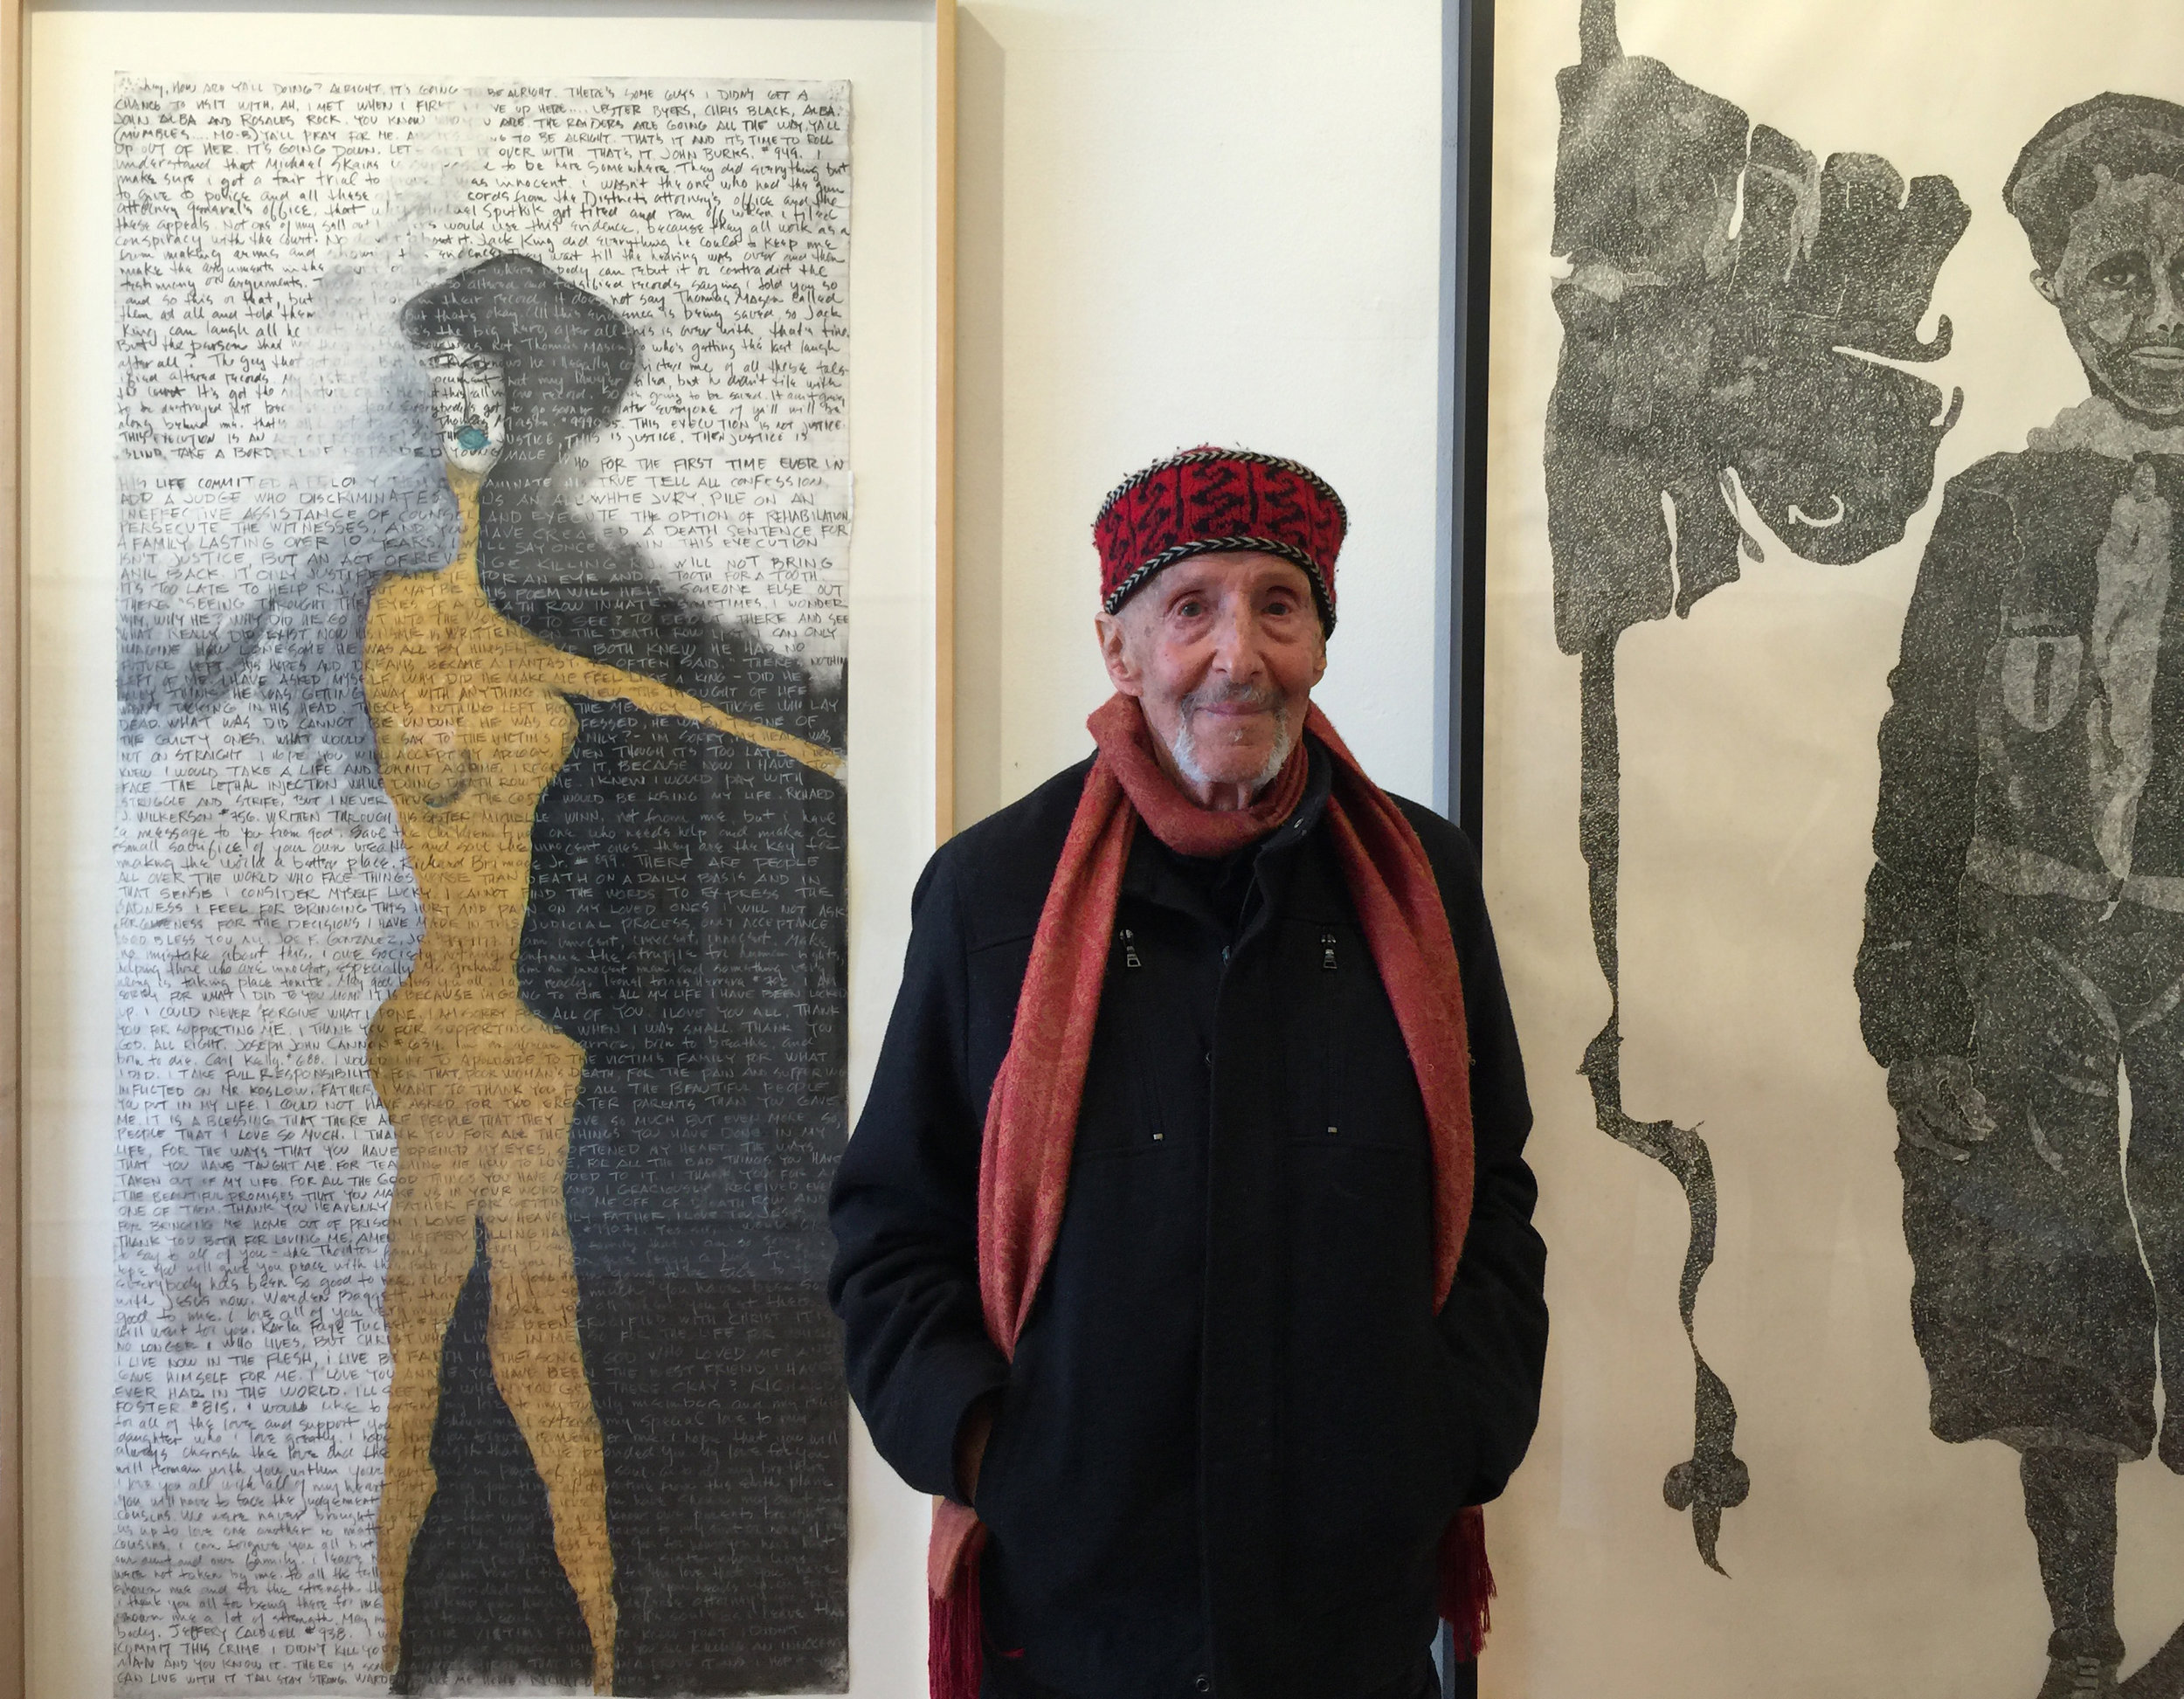 """Kamler with (left) """"Last Statement,"""" 1998, graphite, oil stick on paper, 61 x 31 inches; right: """"Boy Warrior,"""" 1975, graphite on paper, 75 x 36.5 inches"""